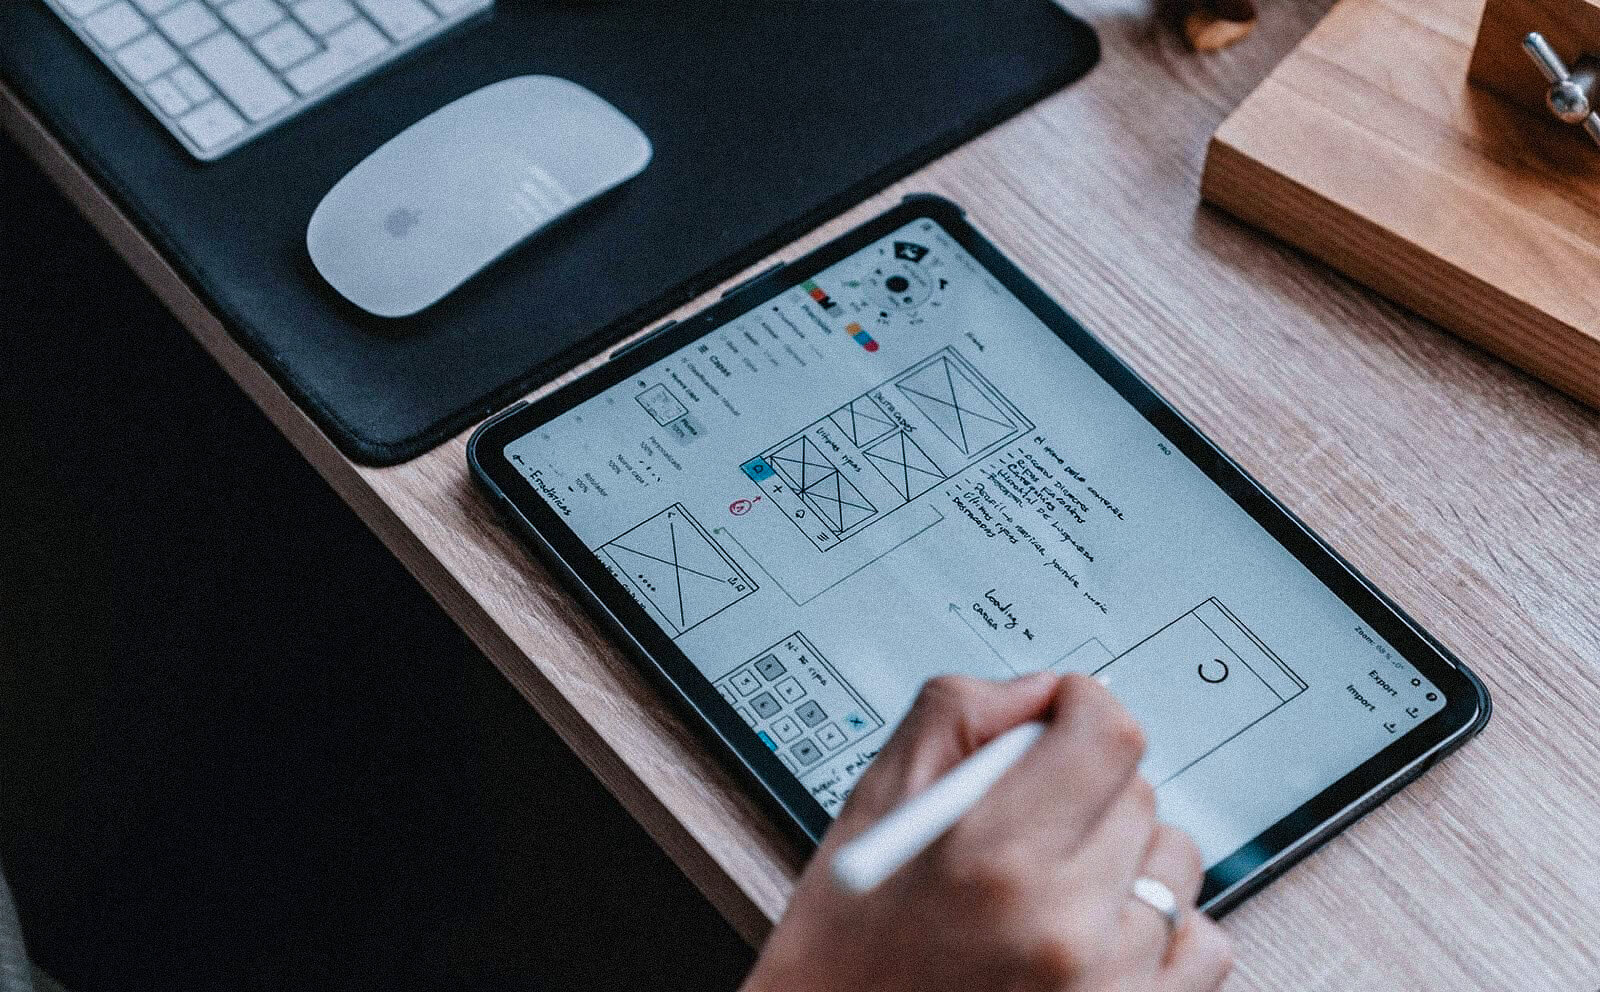 wireframing on a tablet